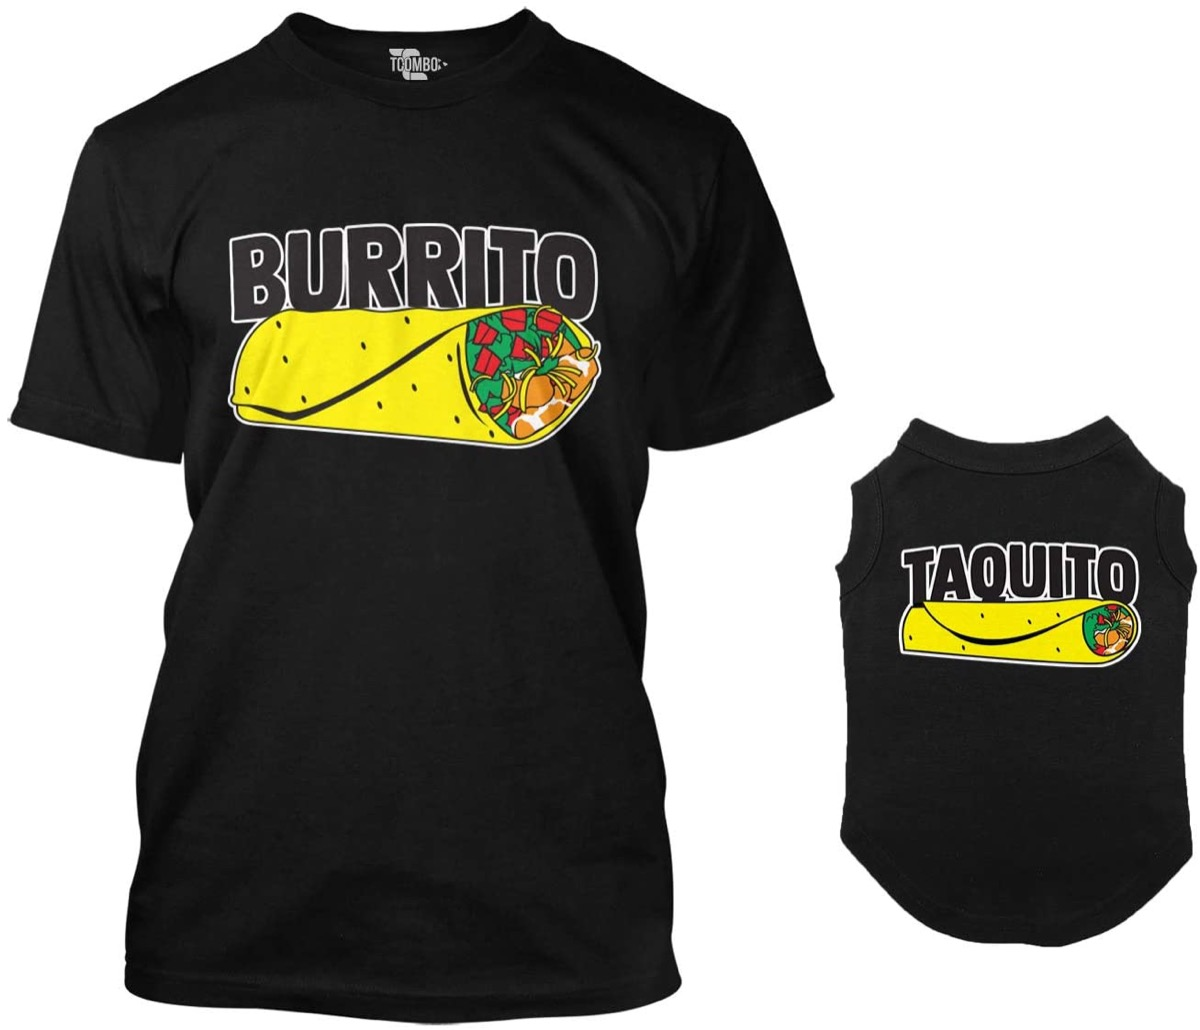 """a black shirt for humans that reads """"burrito"""" and a black shirt for dogs reading """"taquito"""" with the images of either item below the words"""